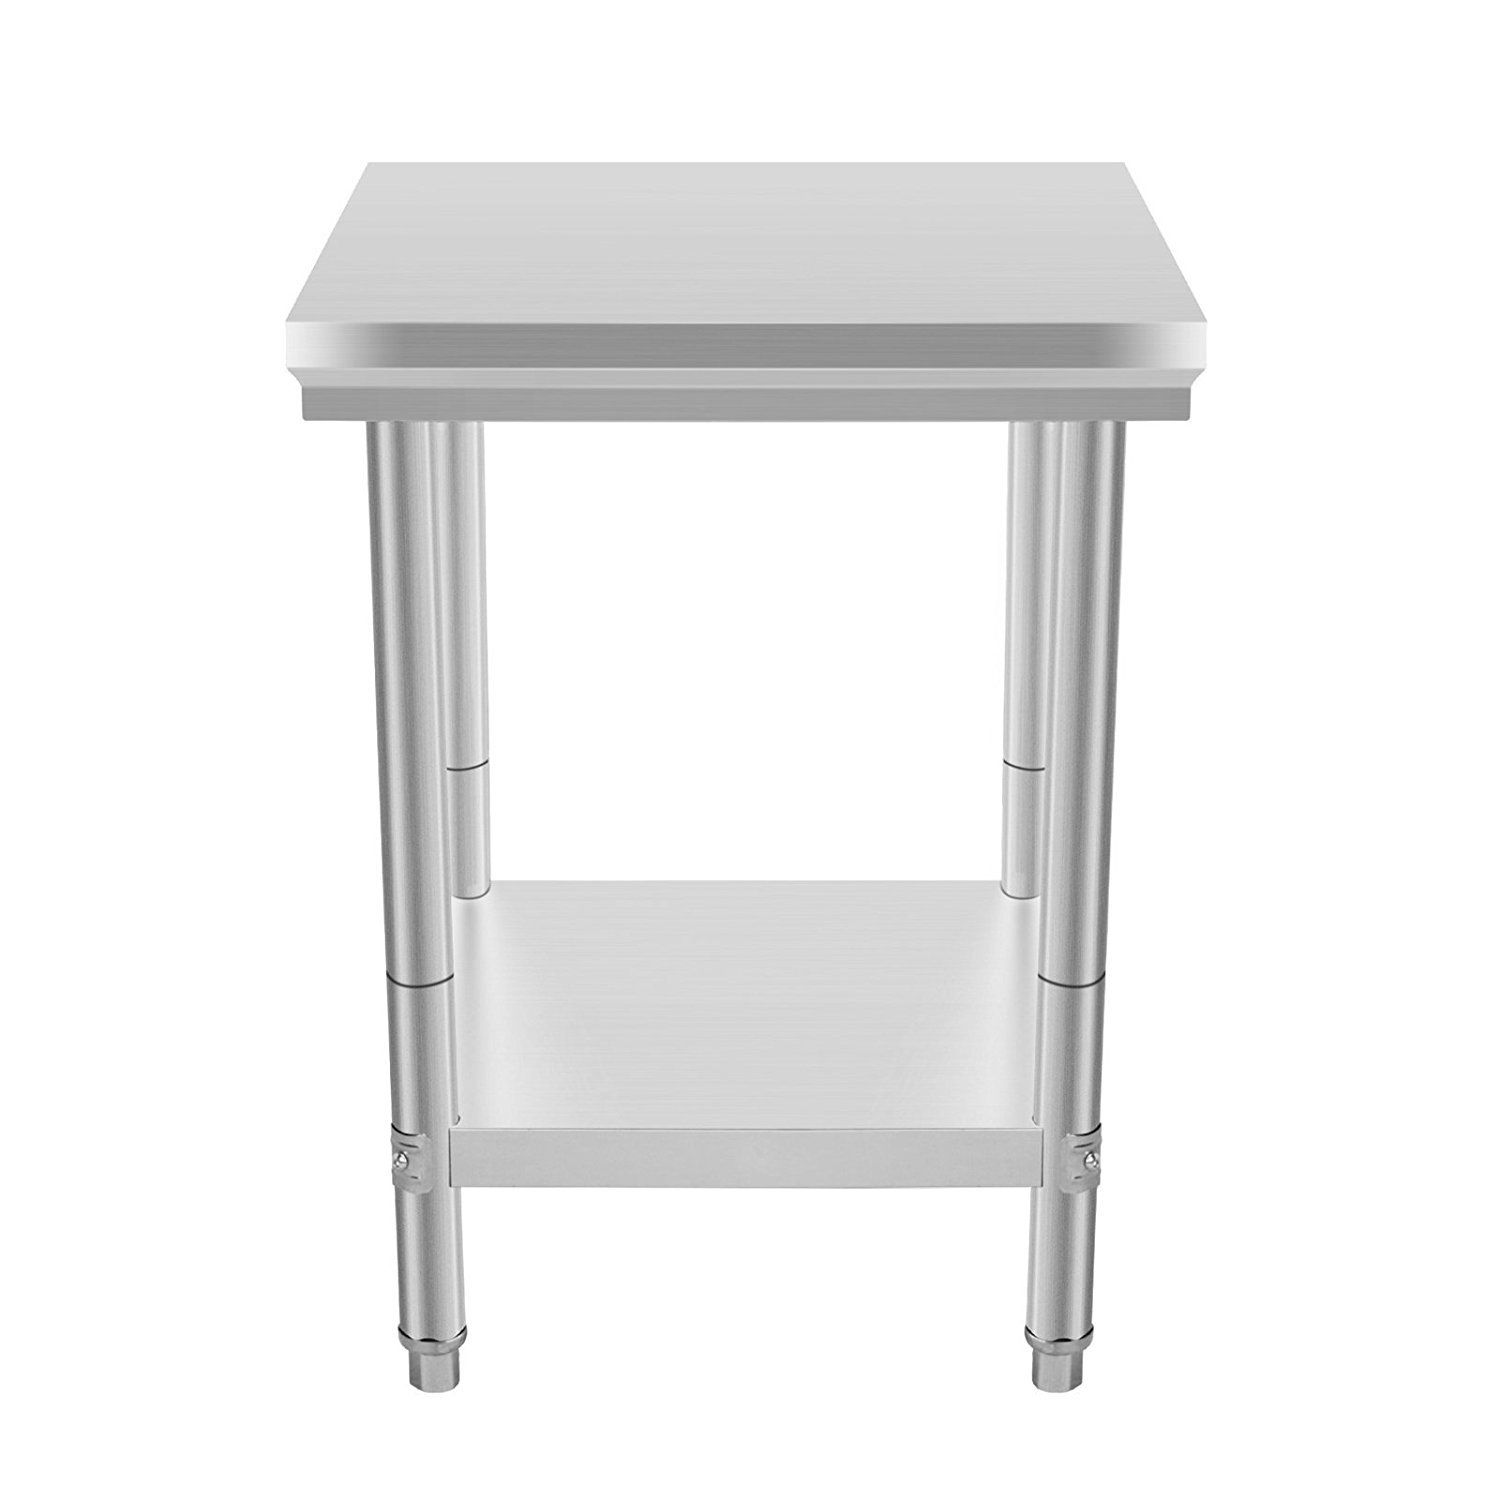 Popsport Stainless Steel Work Table 24x24 Inch Kitchen Work Prep ...